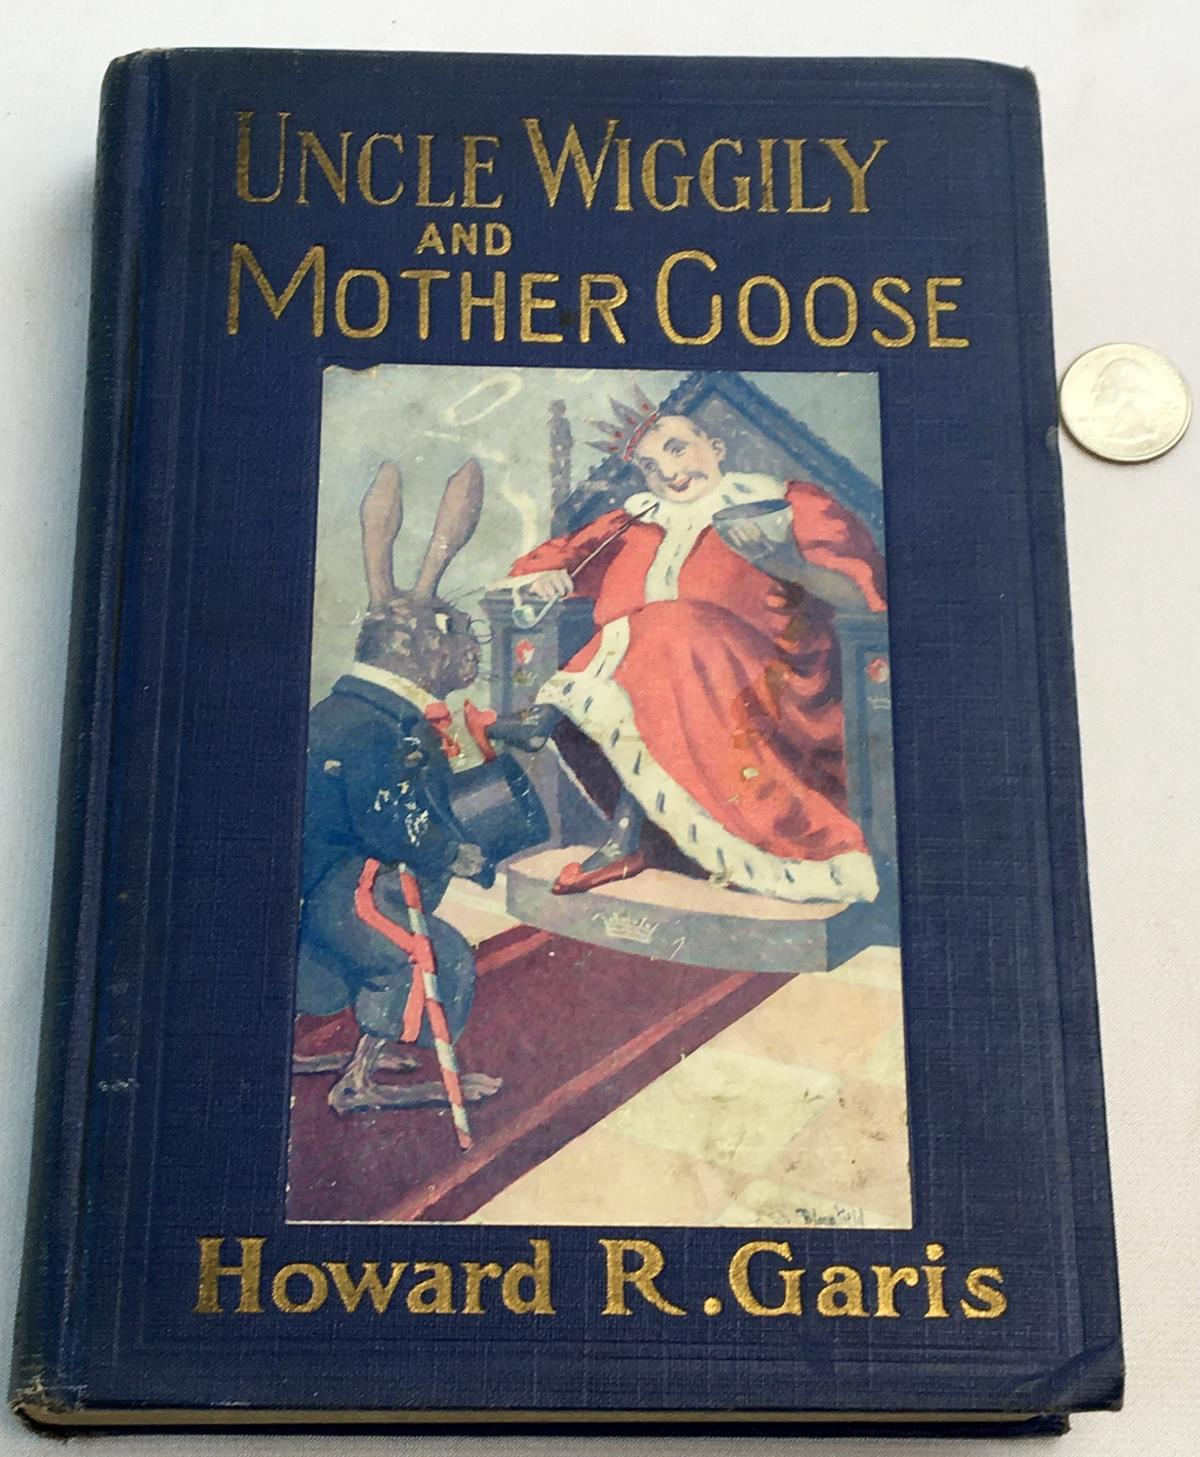 1922 Uncle Wiggily & Mother Goose by Howard R. Garis ILLUSTRATED